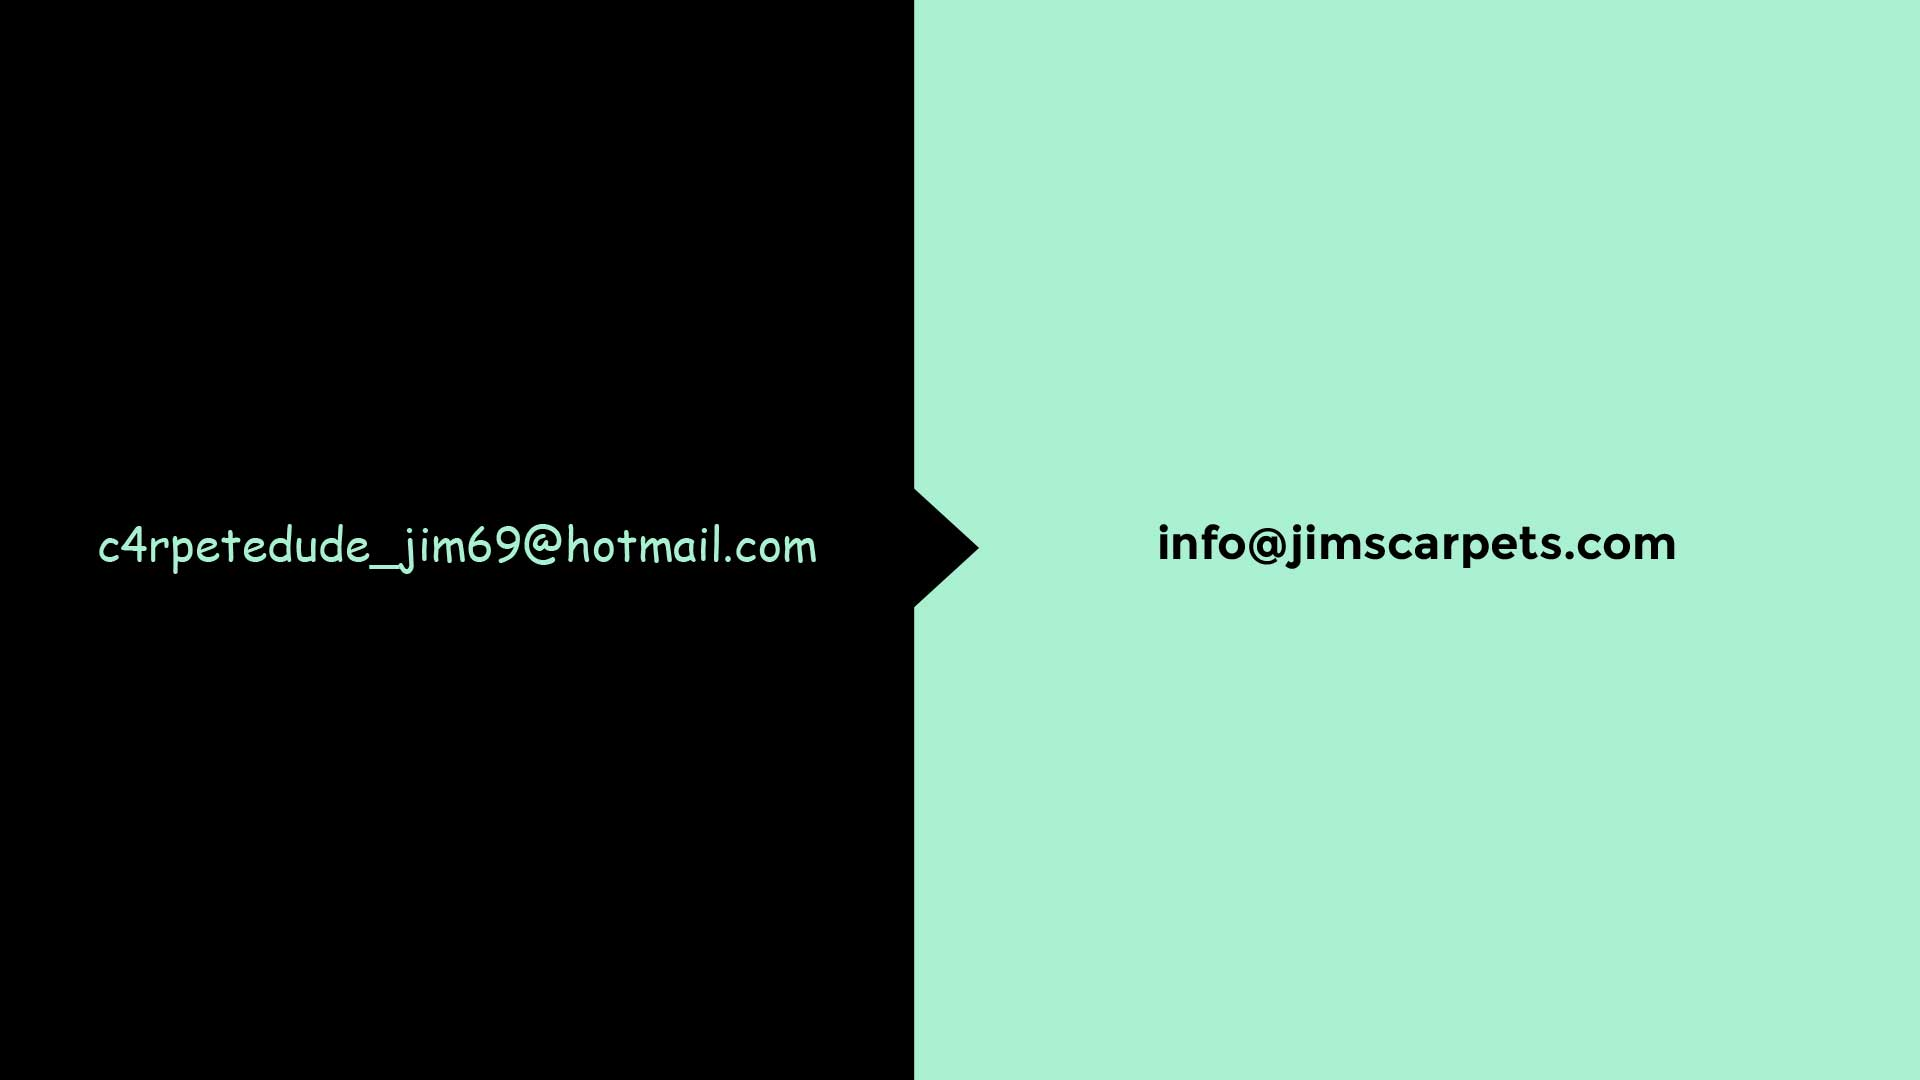 an unprofessional email address is easy to spot when compared to a professional email address